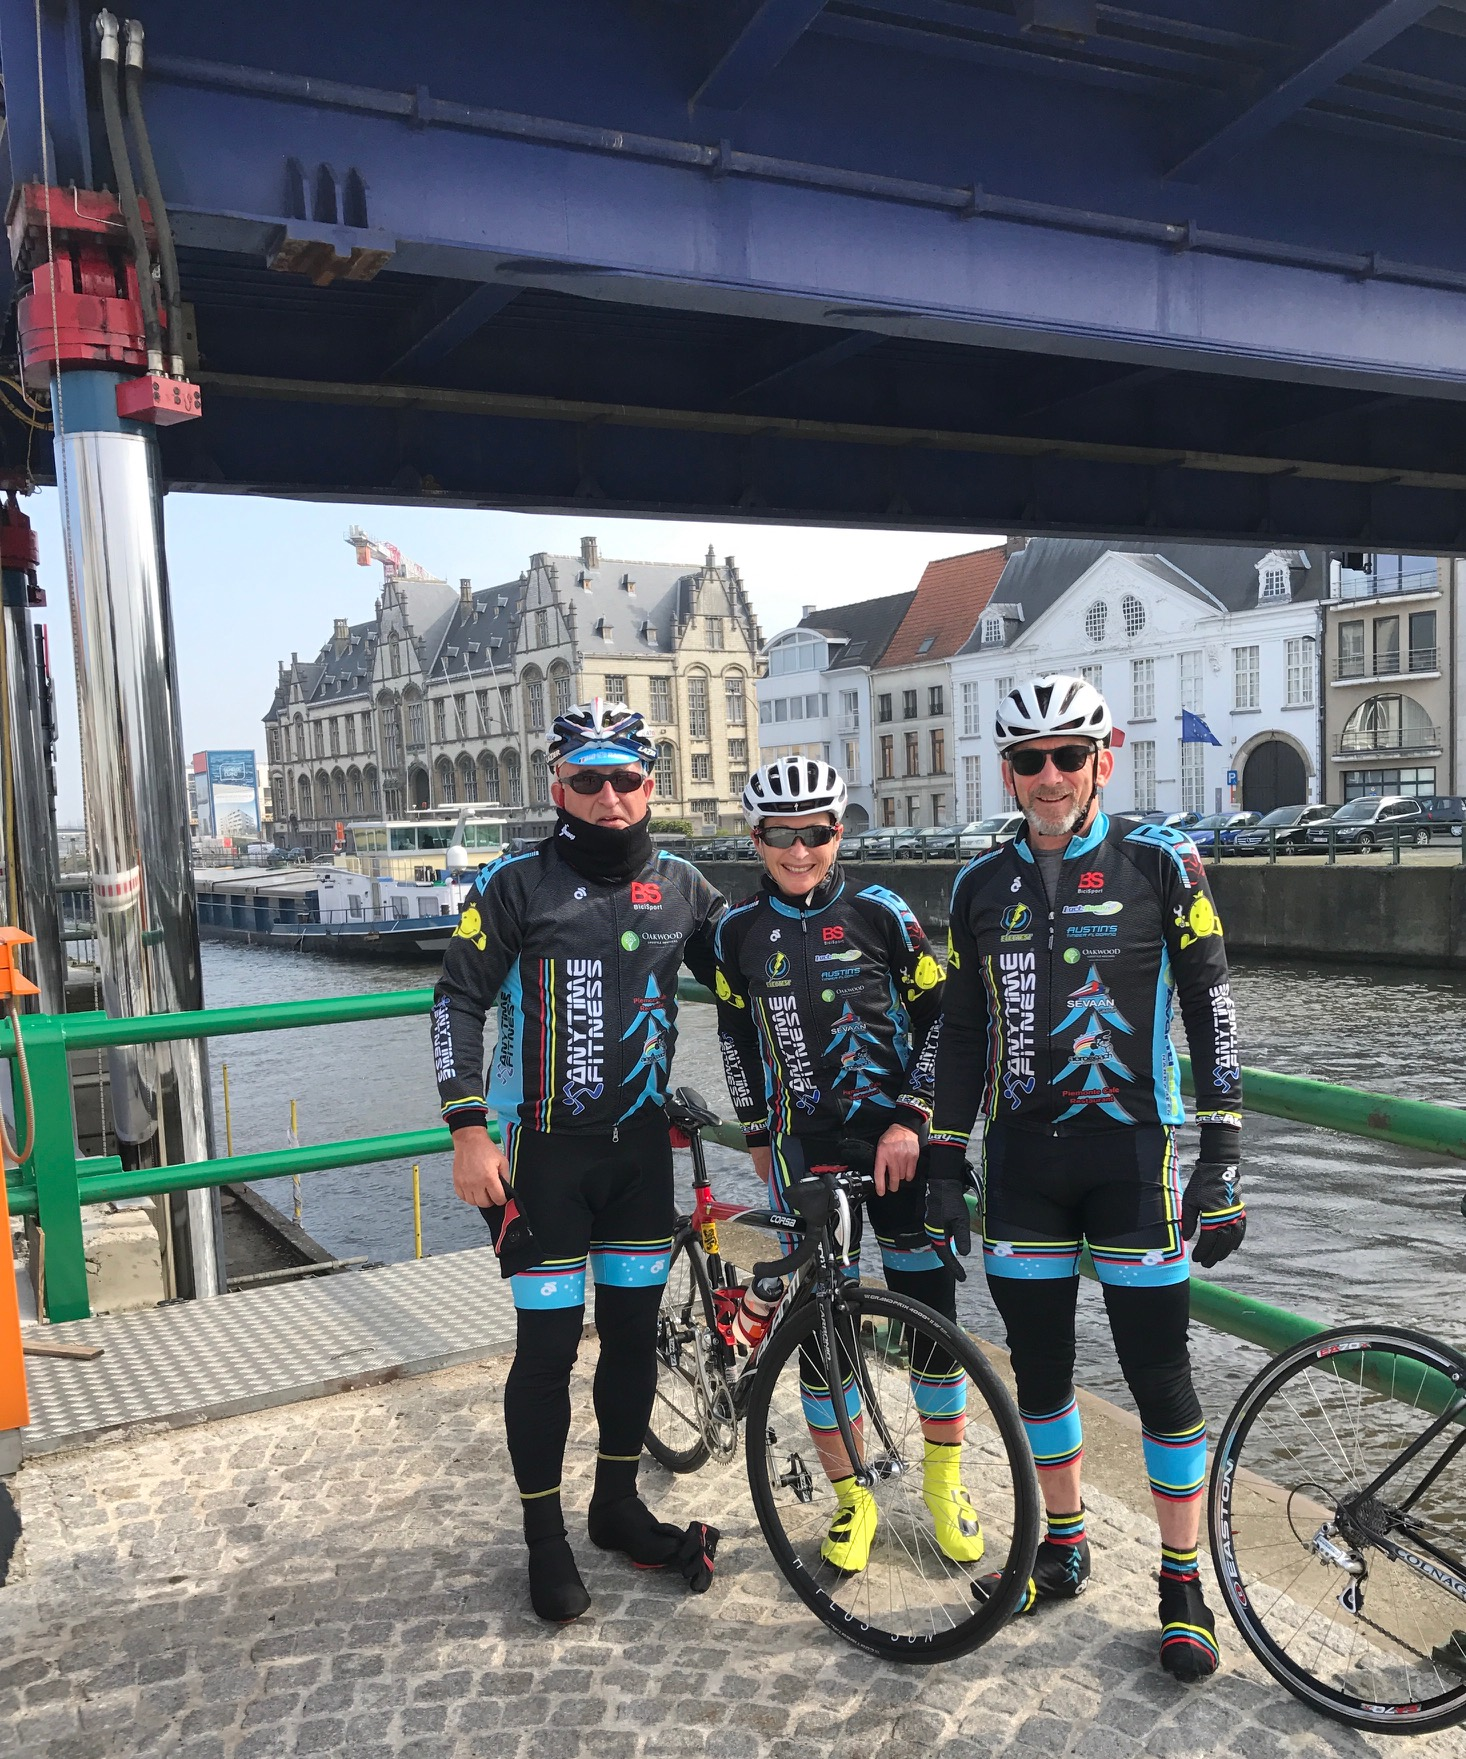 E3 Harelbeke 17 - A cold start to the E3 day via the Schelde River bike path.The return trip into Oudenaarde was briefly stopped as the Oudenaarde bridge was raised to let river barges pass through Oudenaarde.